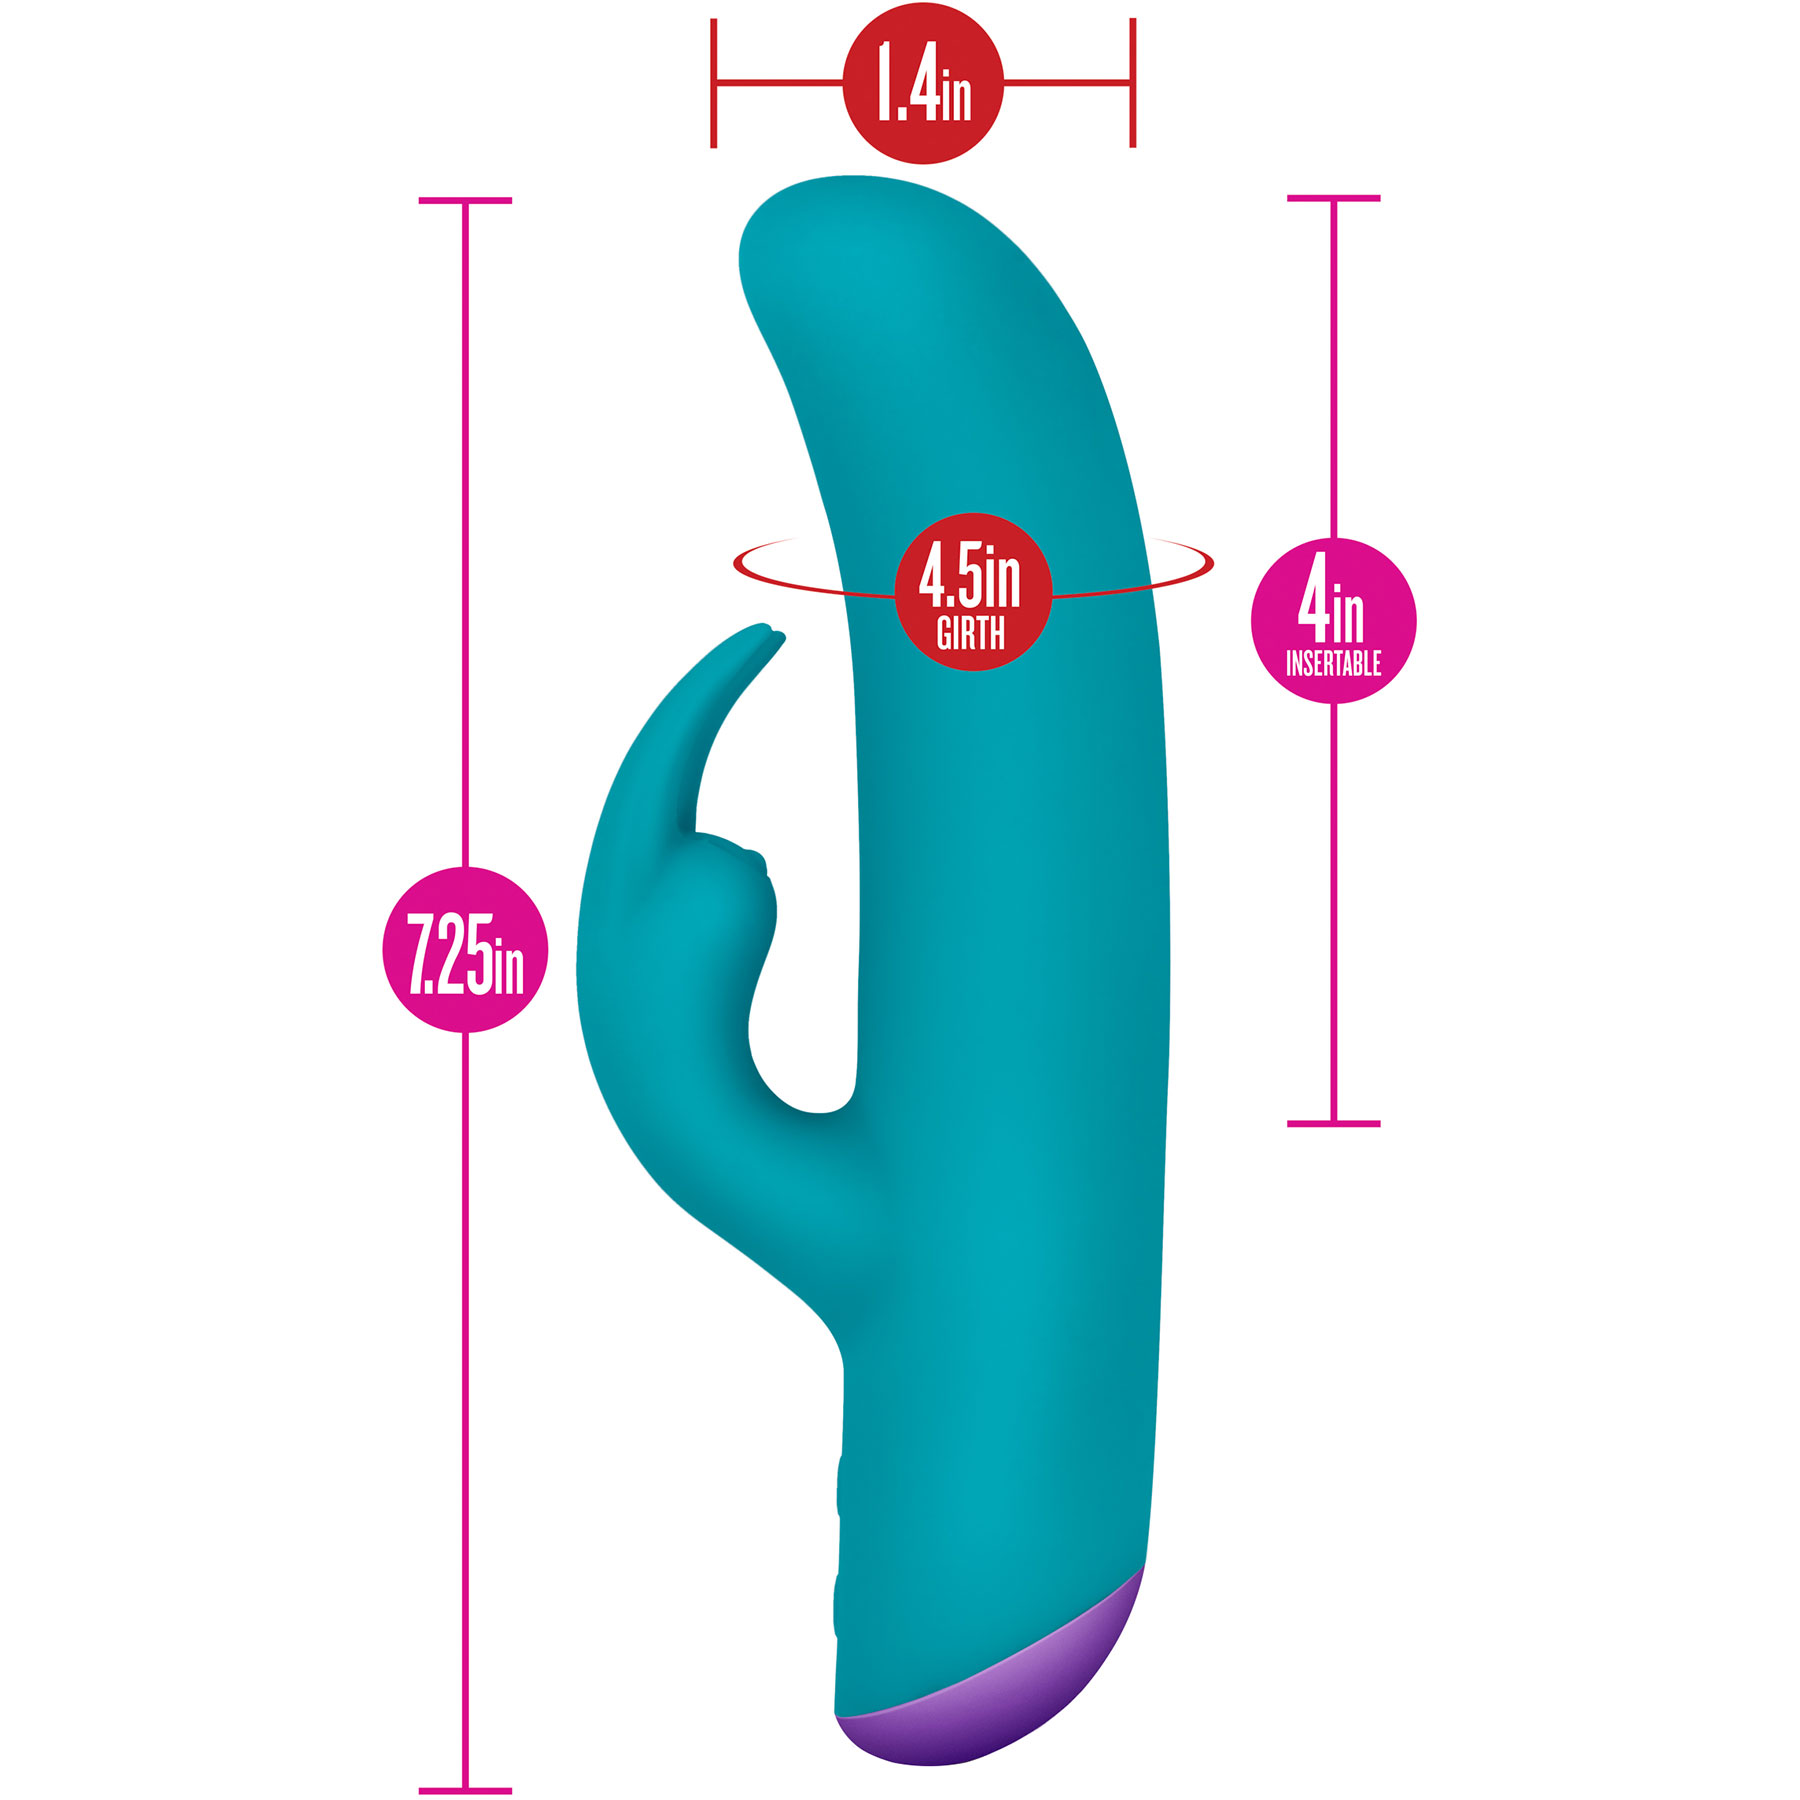 Aria Amplify Silicone Rabbit Style Vibrator by Blush Novelties - Measurements